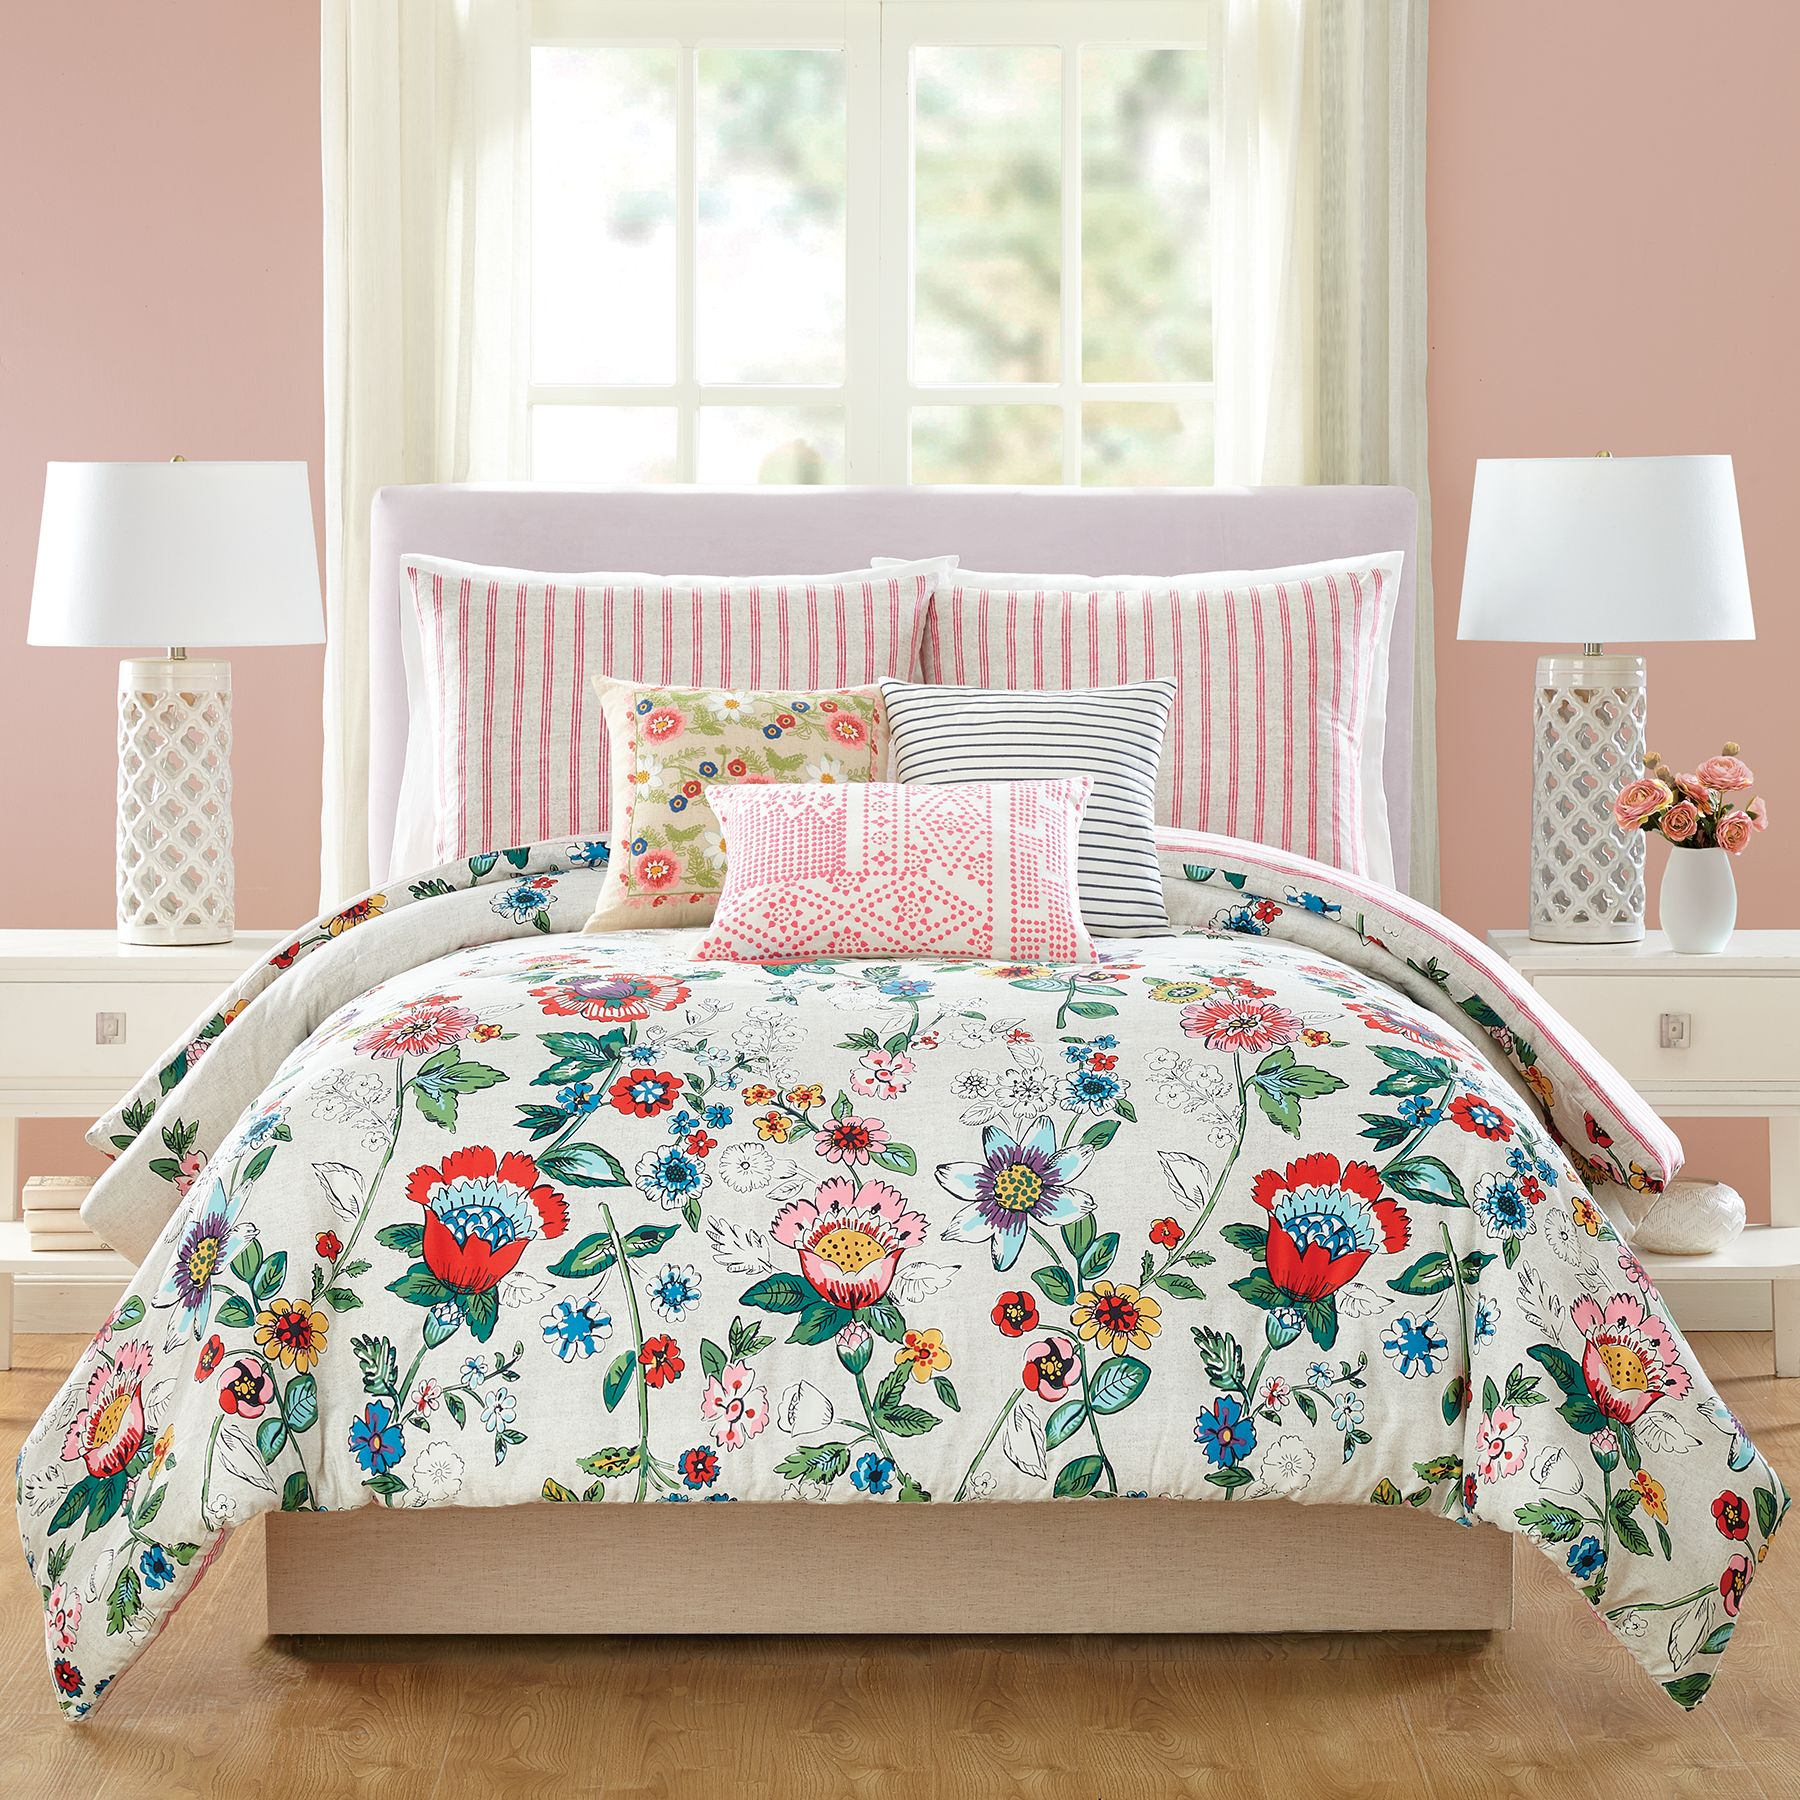 Image Of Coral Floral Comforter Set Twin/Twin XL In Pink